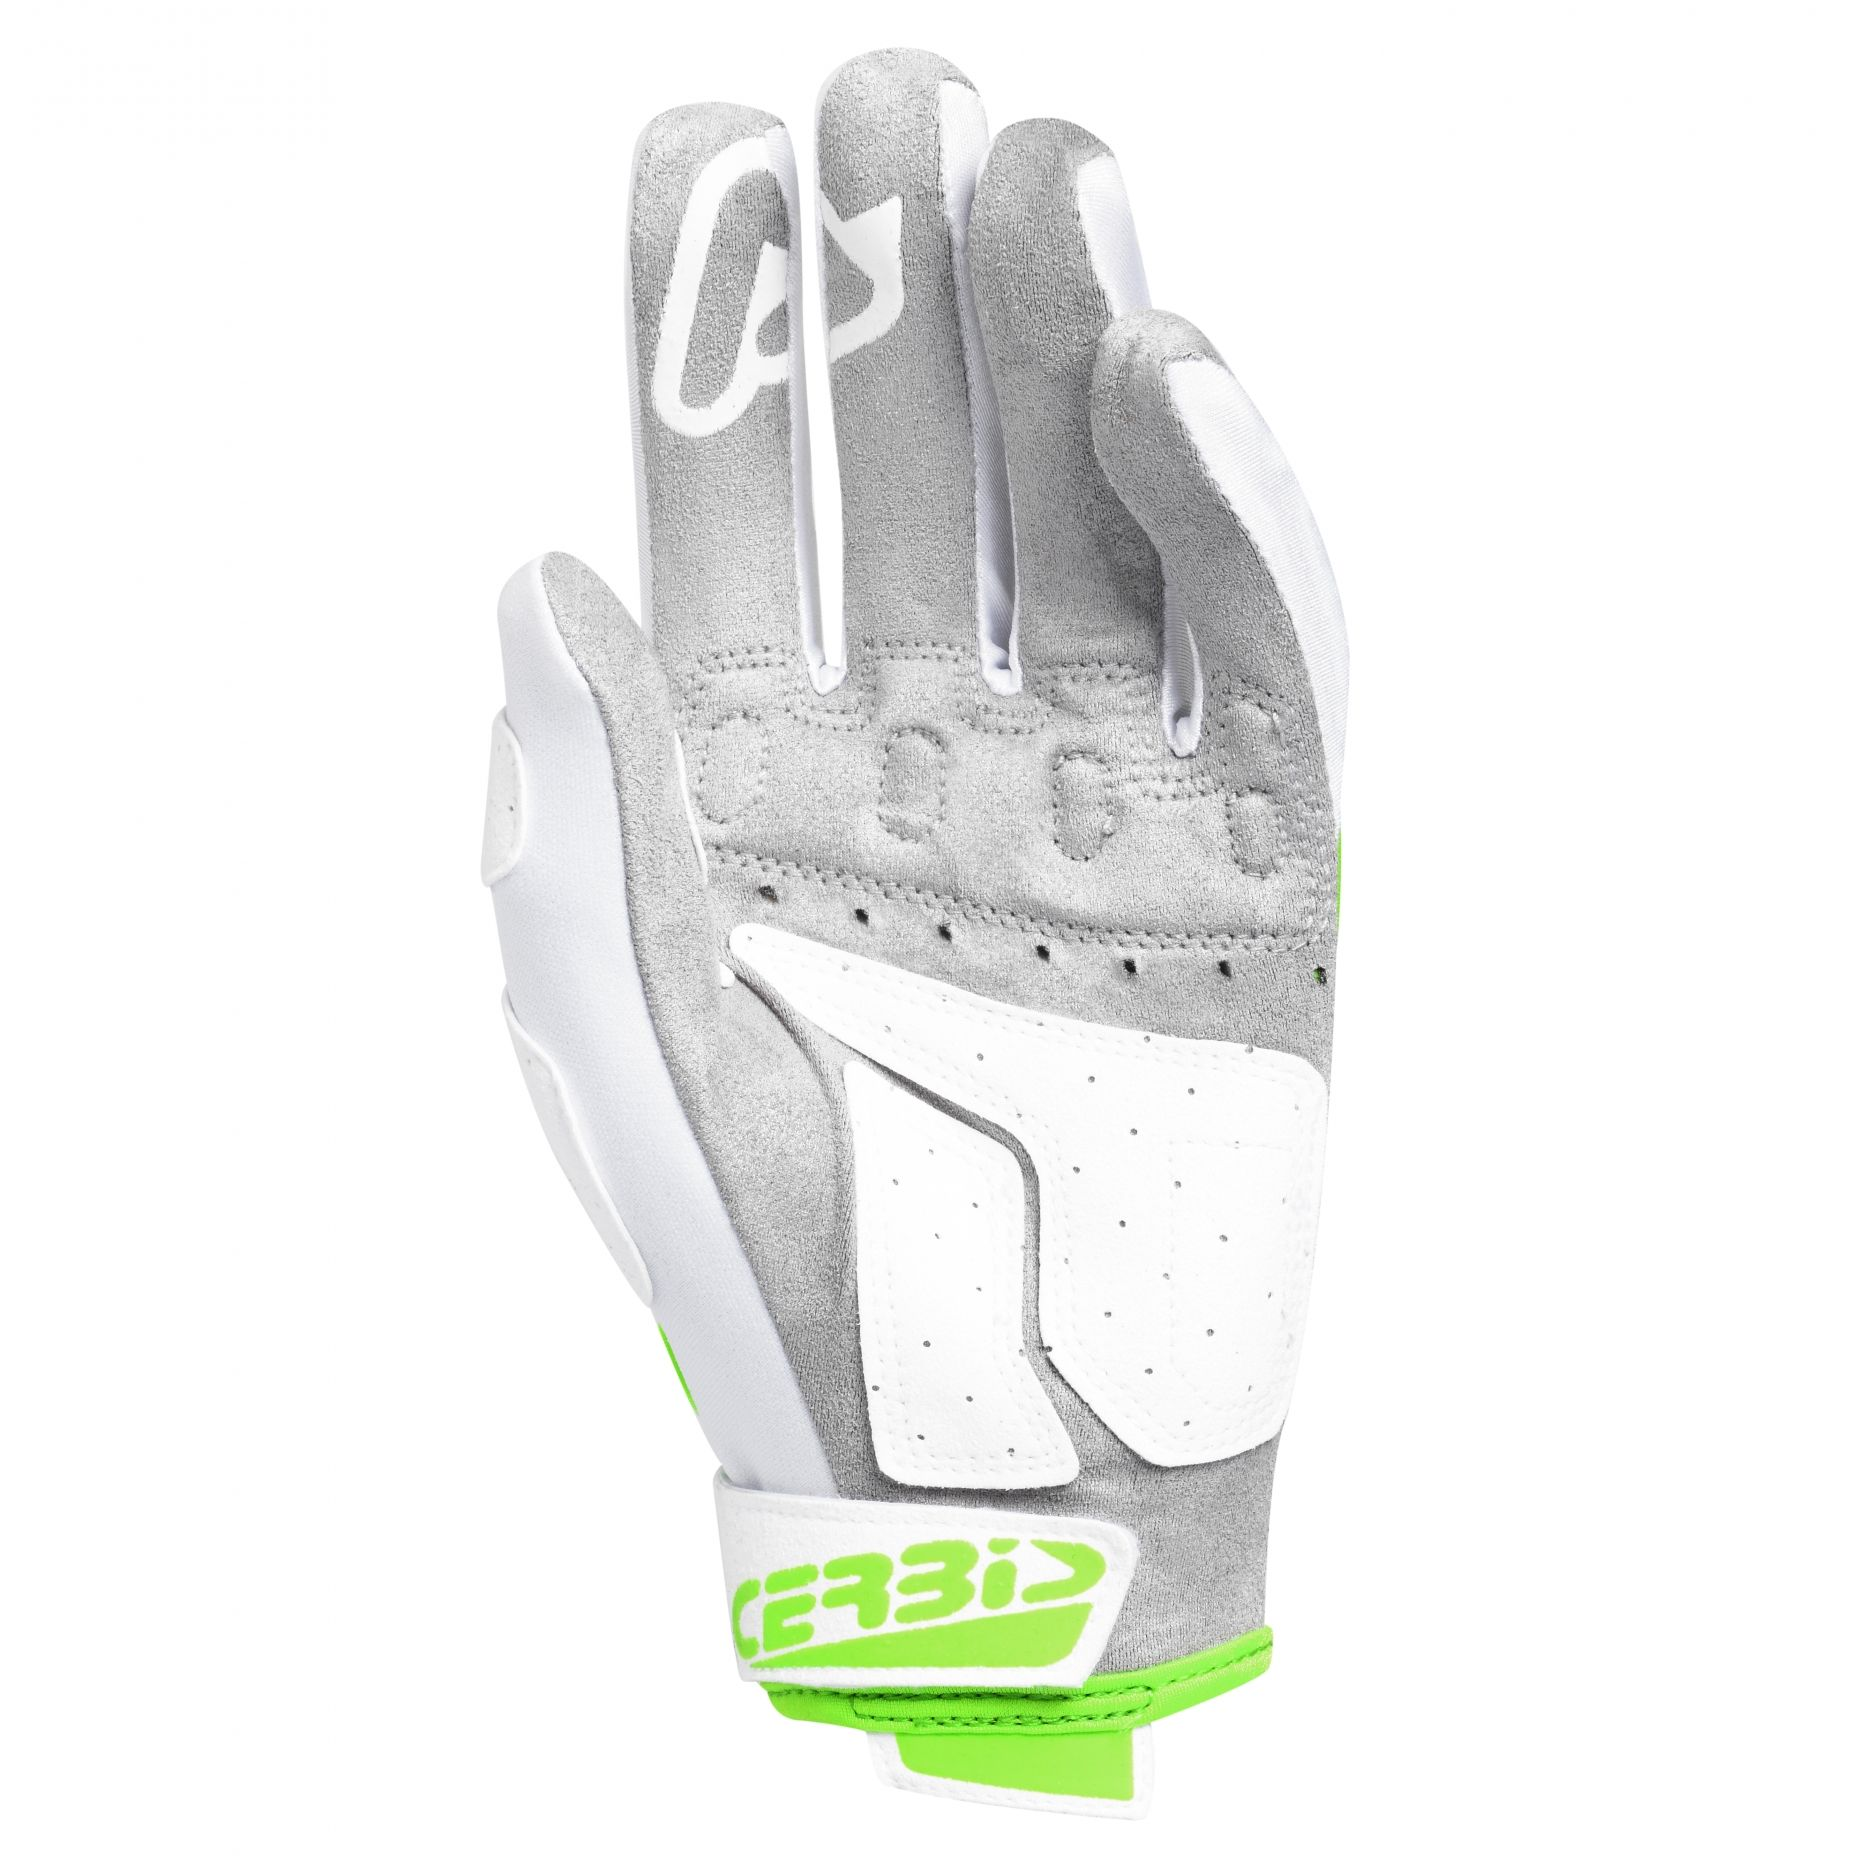 Gants cross Acerbis MX X-P GREEN WHITE 2020